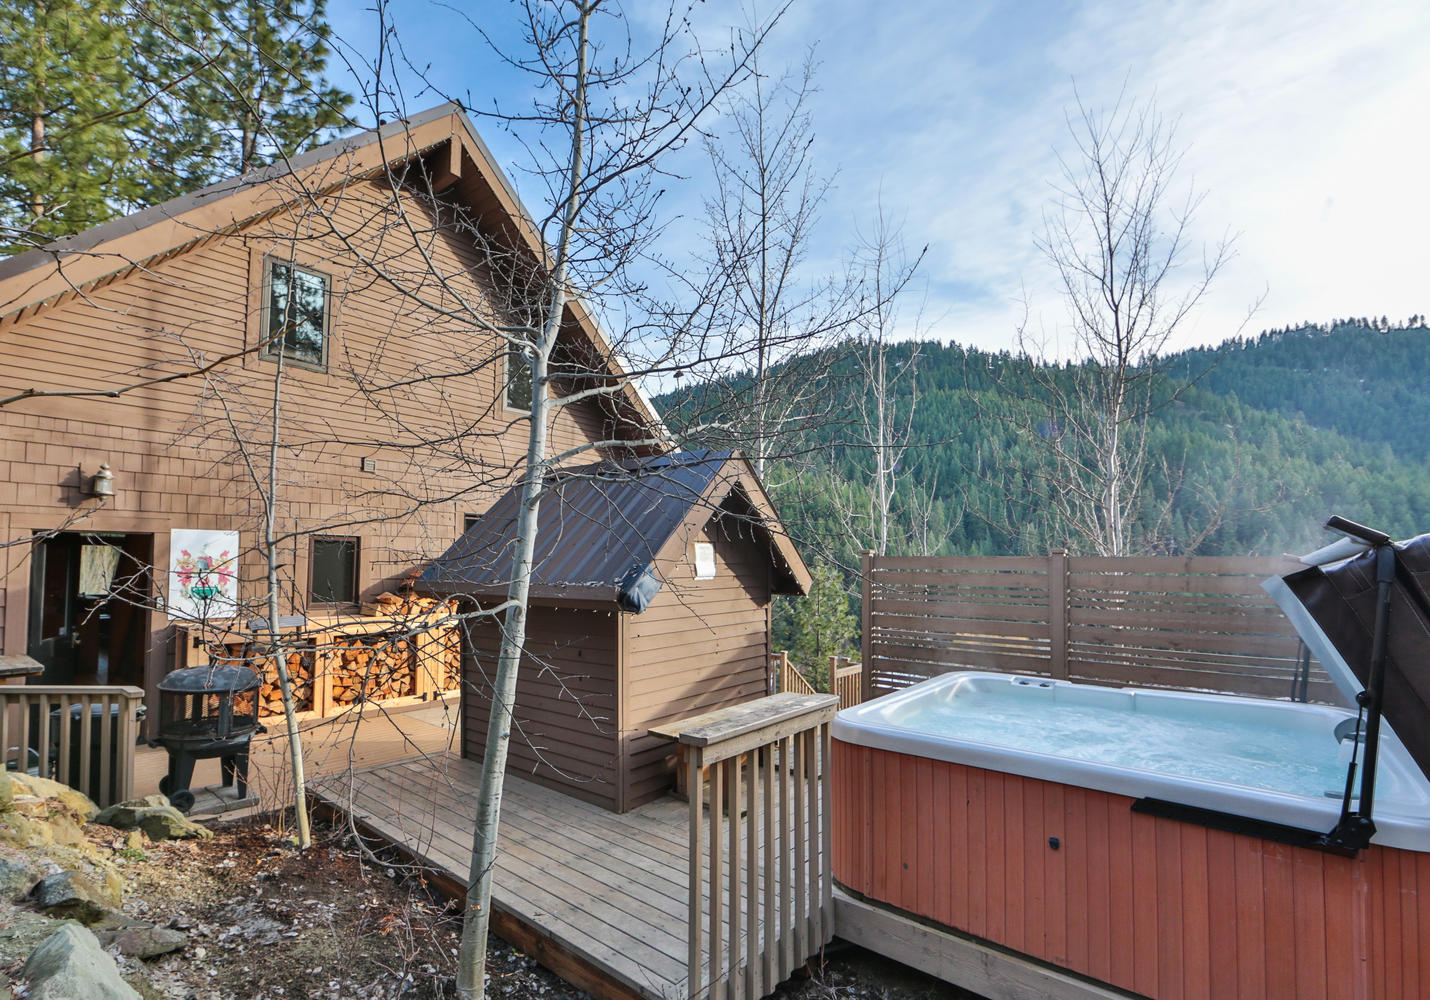 The Cabin at Eagle Creek - Vacation Rentals in Leavenworth, WA